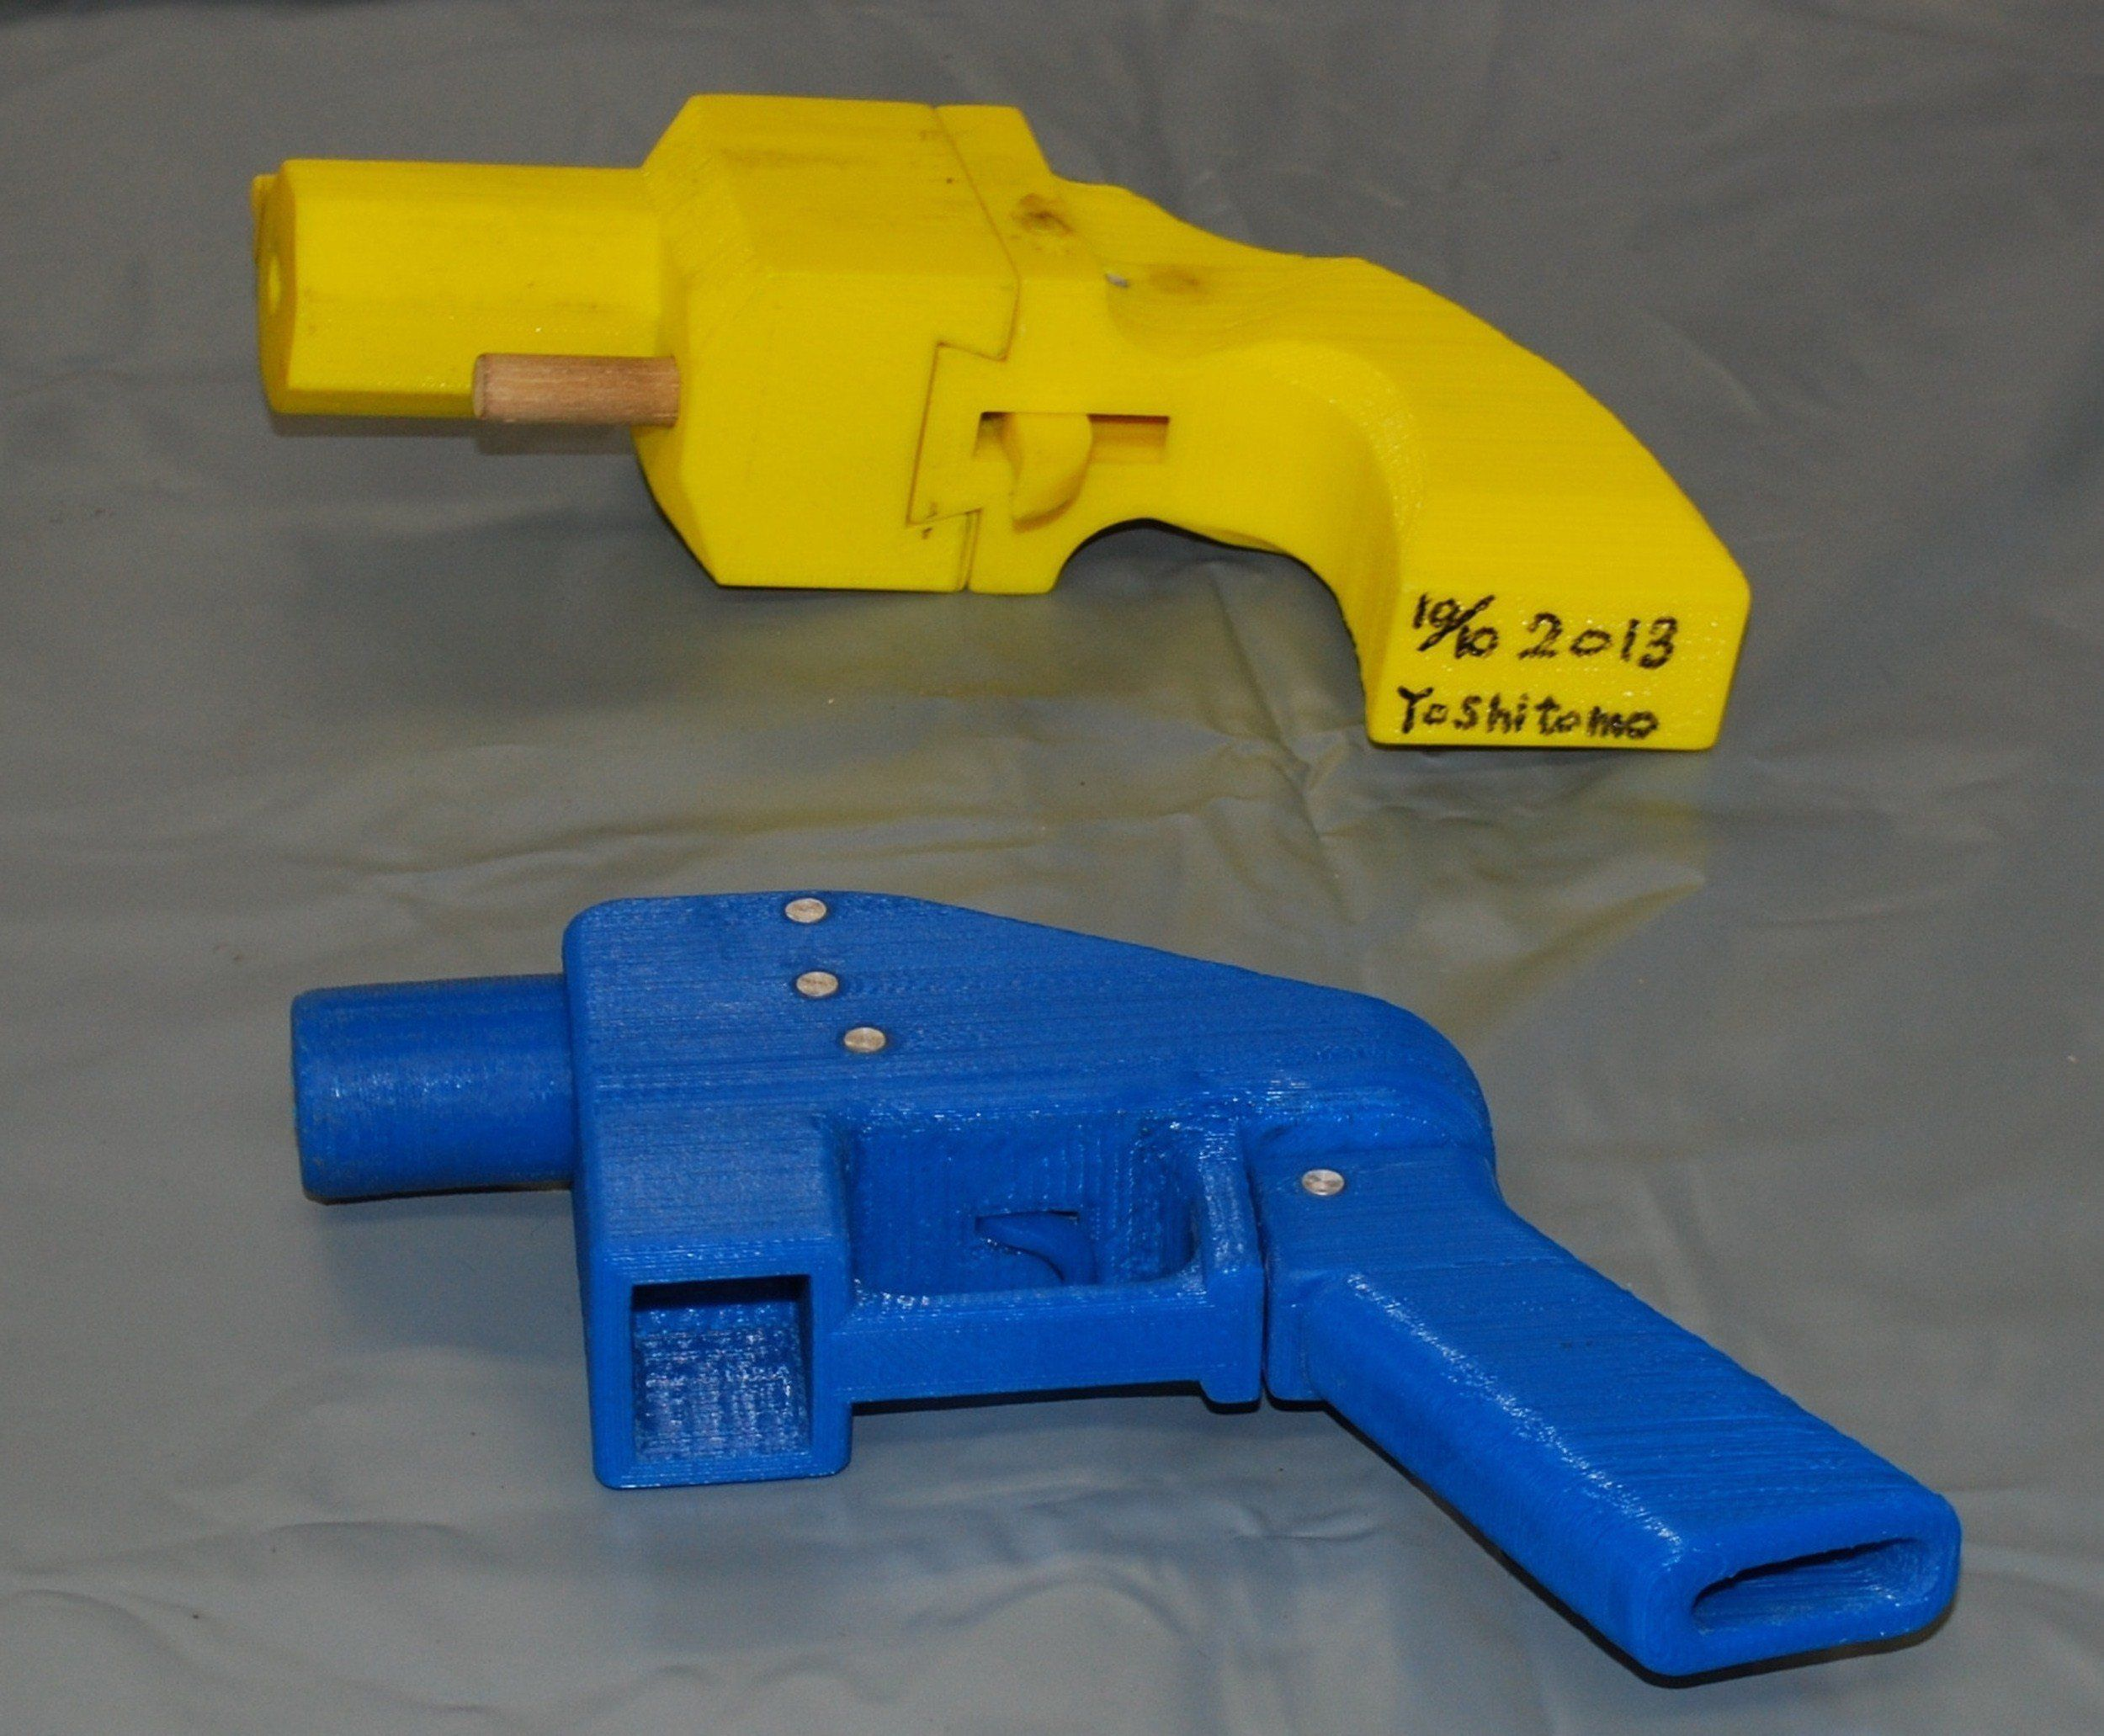 Seized plastic made guns produced by a 3-D printer are displayed at a police station in Yokohama on May 8, 2014.  A Japanese man suspected of possessing guns made with a 3-D printer has been arrested in what was said to be the country's first such detention. Officers who raided the home of Yoshitomo Imura, a 27-year-old college employee, confiscated five weapons, two of which had the potential to fire lethal bullets.   AFP PHOTO / JIJI PRESS    JAPAN OUT        (Photo credit should read JIJI PRESS/AFP/Getty Images)